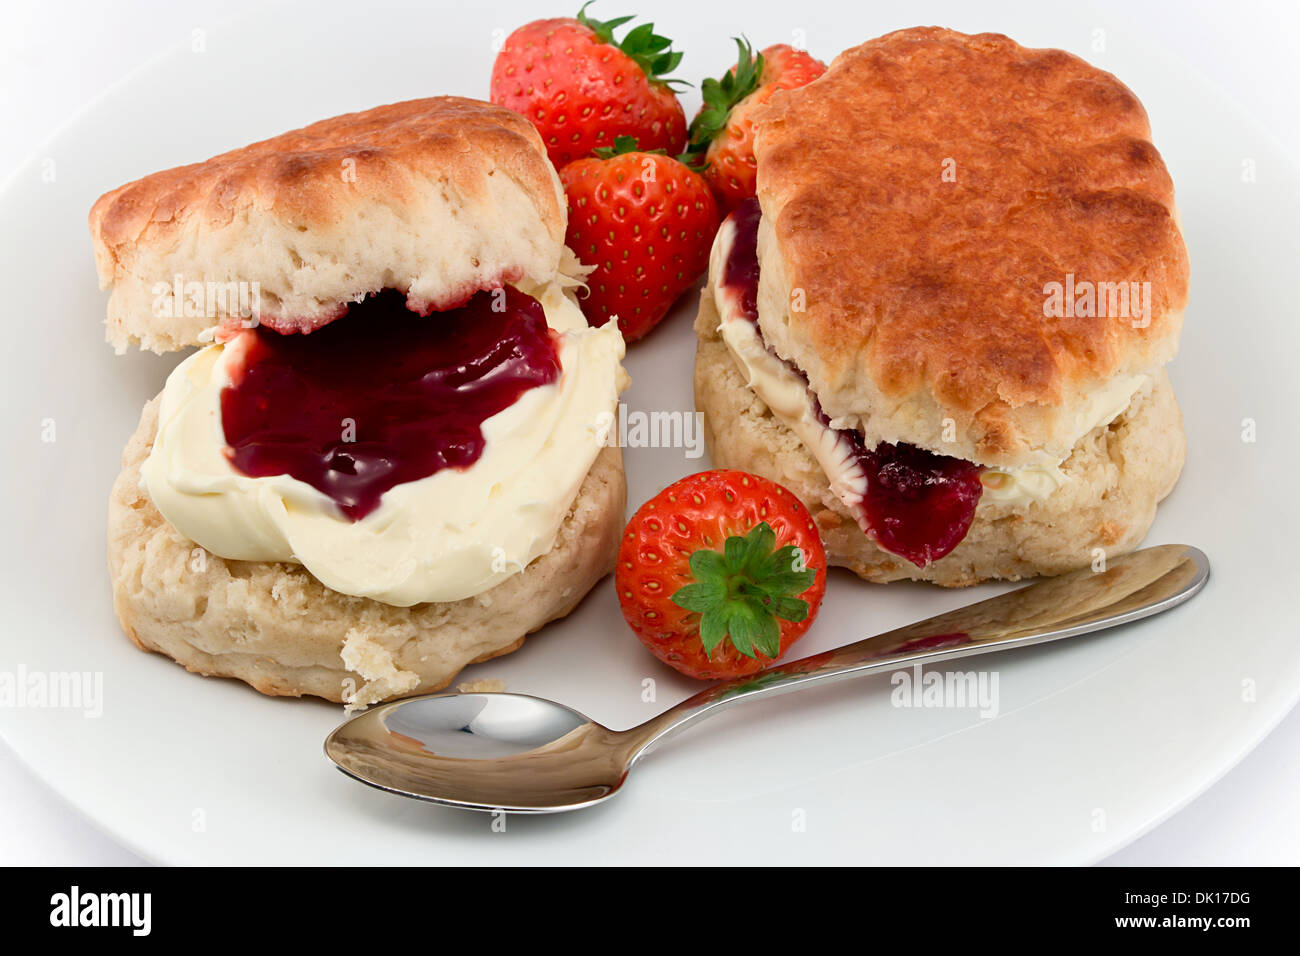 Traditional Afternoon Tea of Devonshire scones topped with clotted cream and strawberry jam often served with coffee or tea - Stock Image